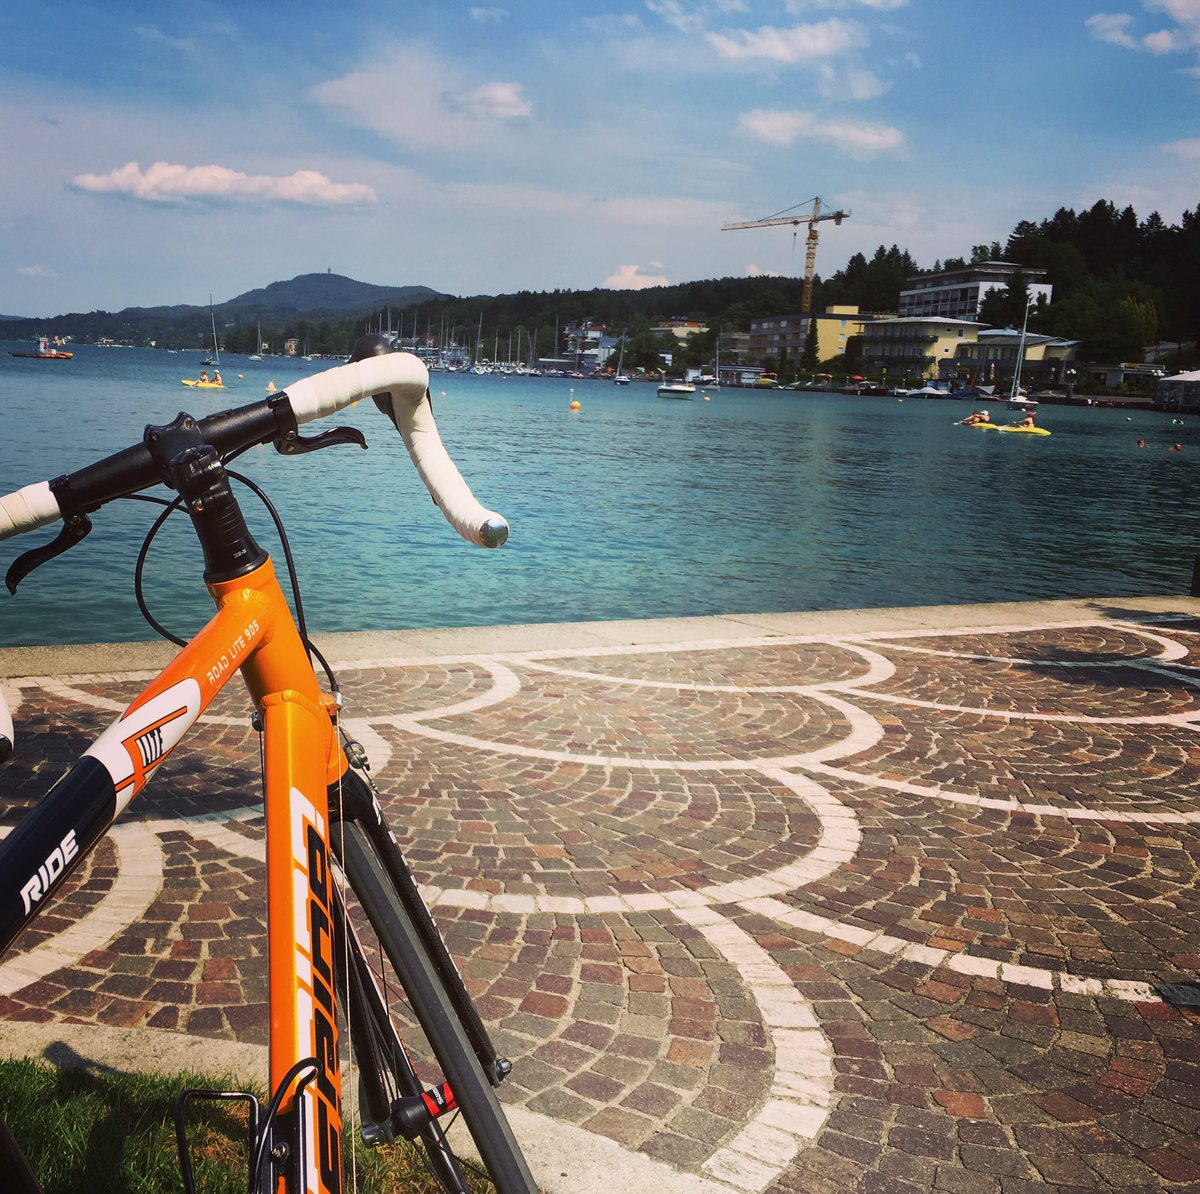 Trainings #session done #klopeinersee #wörthersee #rundum #retour #pushthetempo #withmyboy #kärnten #cycling<br>http://pic.twitter.com/v2XLKGdMCu